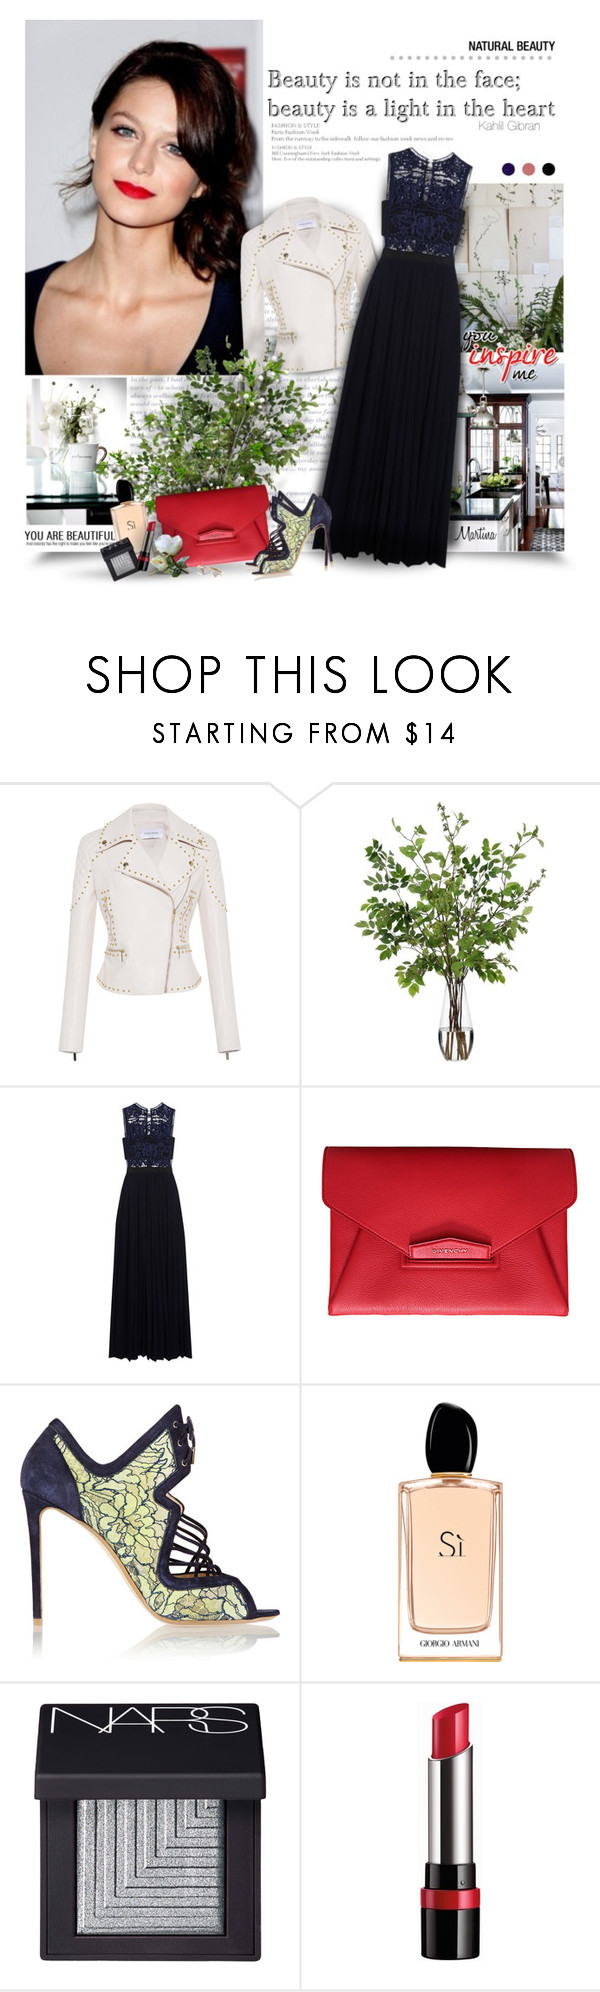 """""""The Beauty Of The Heart"""" by thewondersoffashion ❤ liked on Polyvore featuring Zuhair Murad, Diane James, self-portrait, Givenchy, Nicholas Kirkwood, Giorgio Armani, NARS Cosmetics, Rimmel, Diamonds Unleashed and women's clothing"""